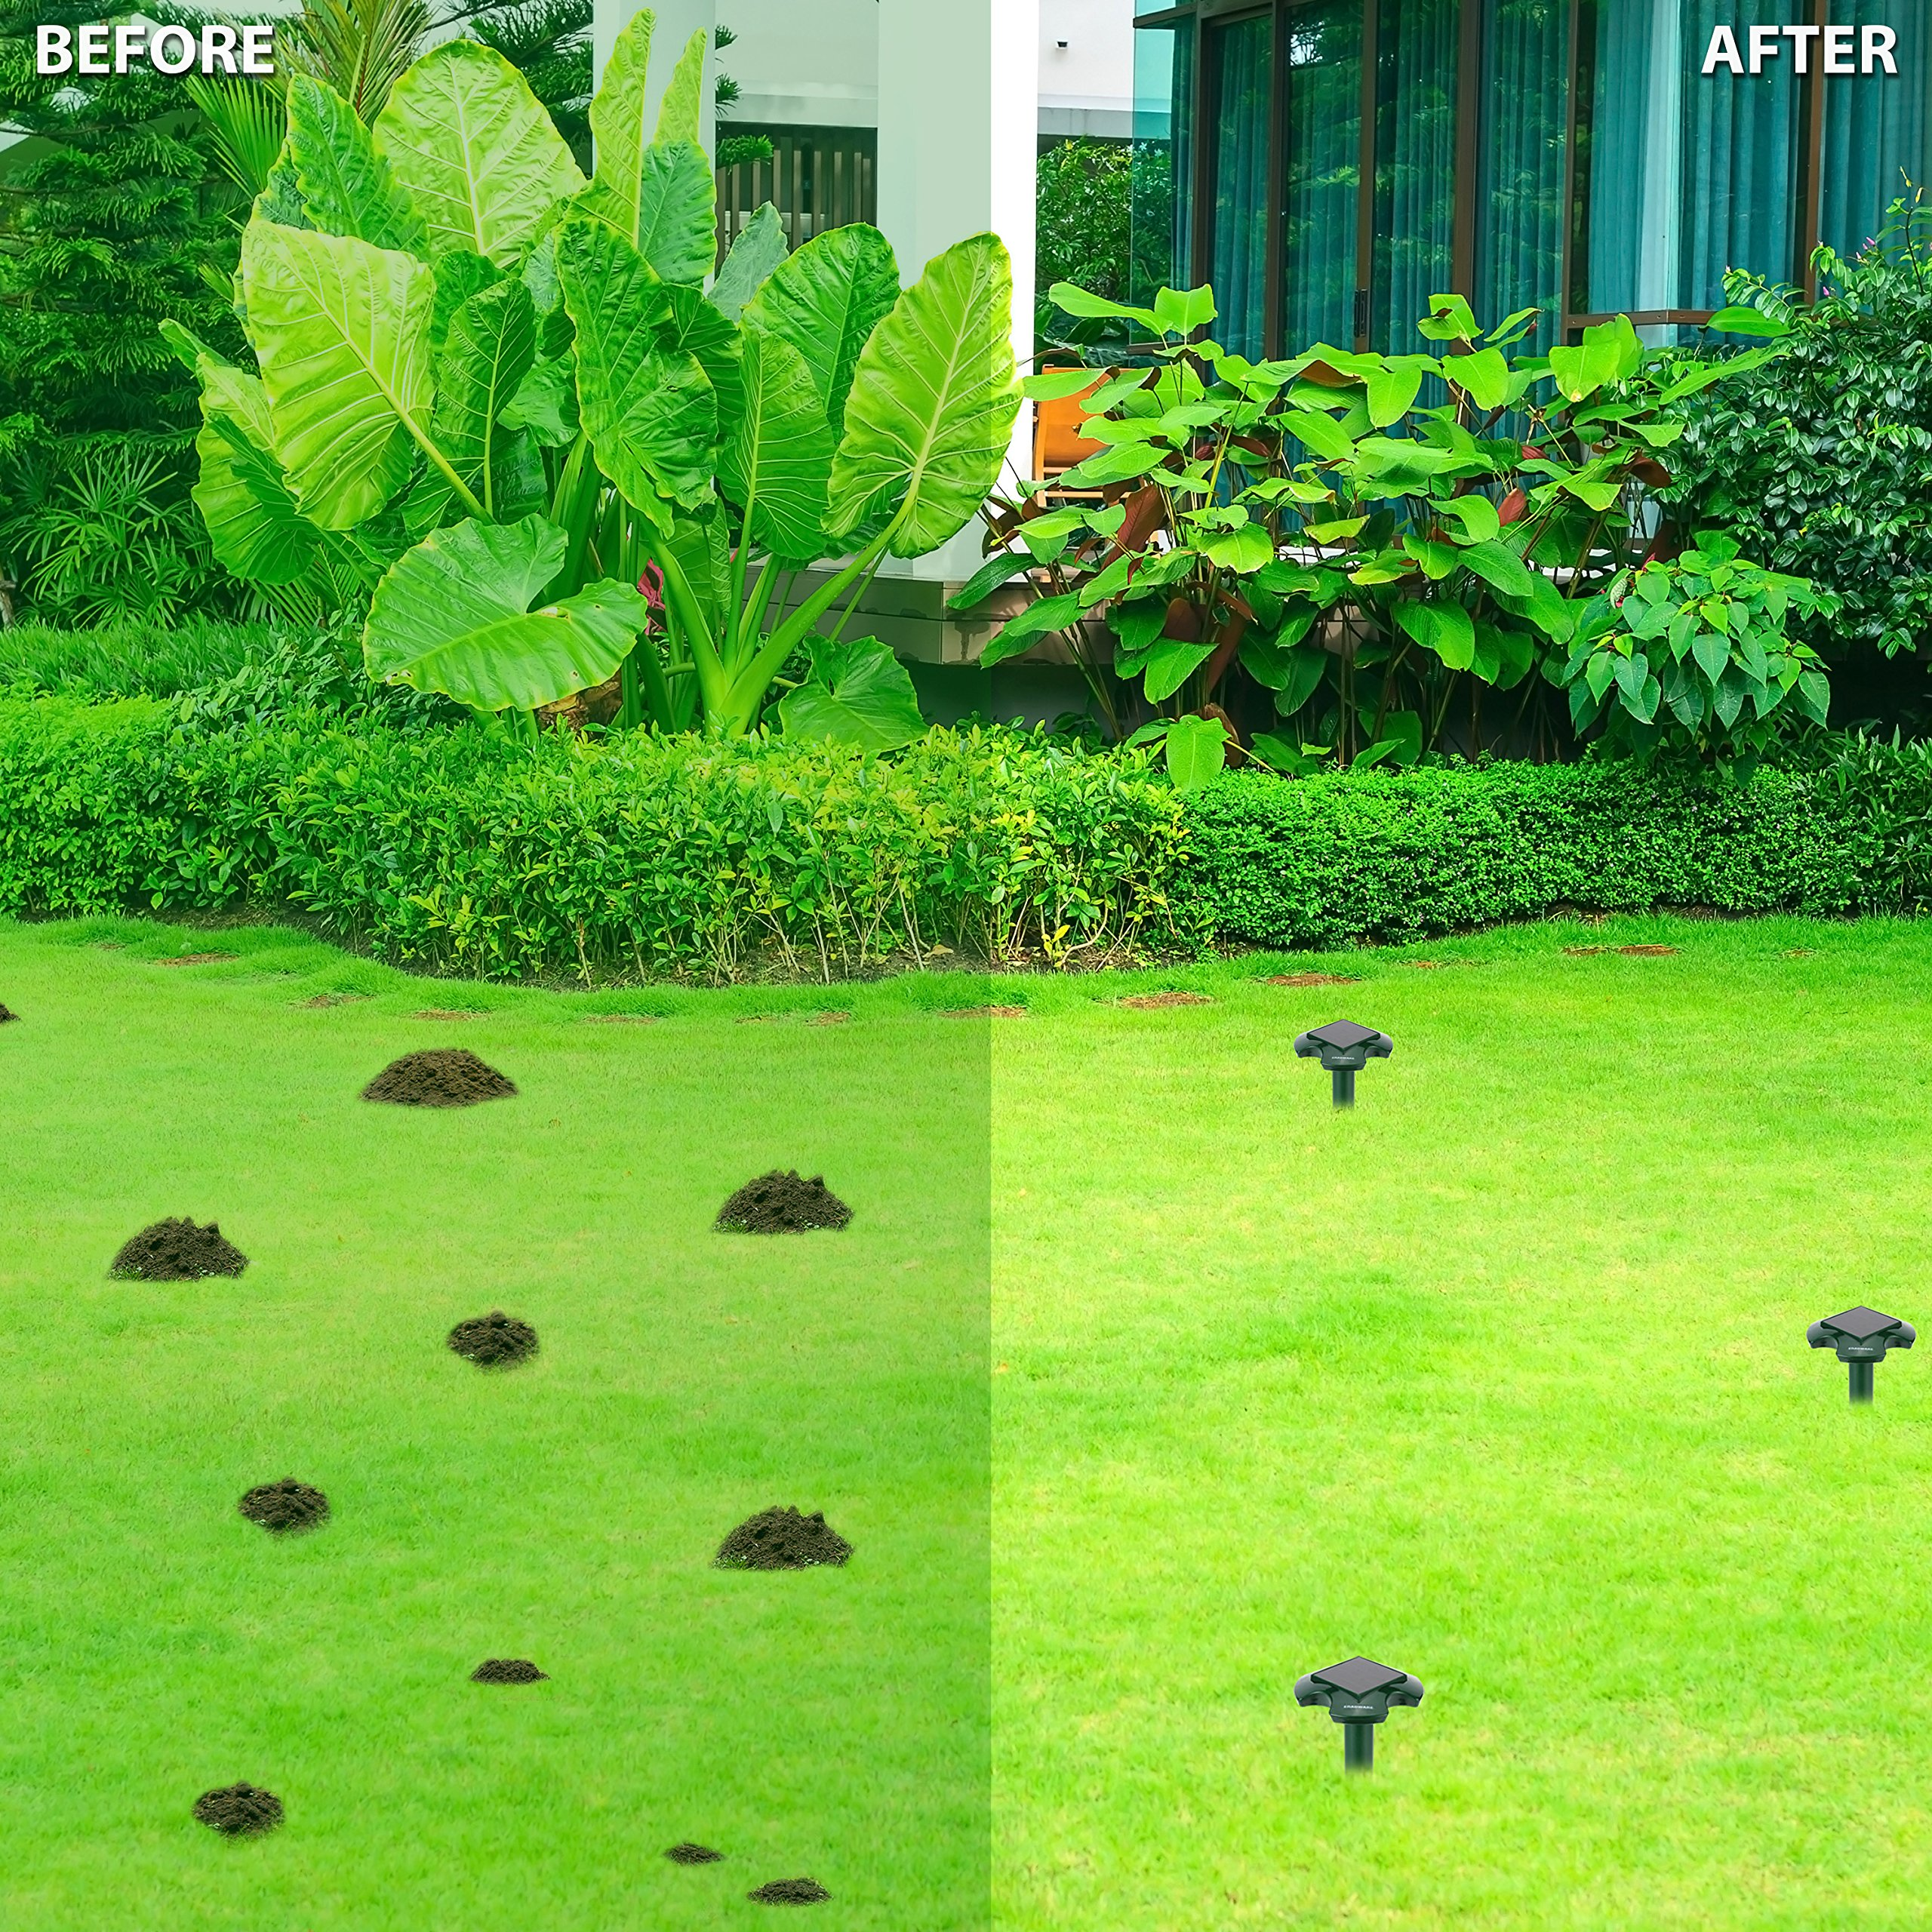 Eradware Solar Powered Mole Repellent (2 Pack), Ultrasonic Pest Repeller, Vole Rodent Repellant, Also Repels Away Snake Gopher Chipmunk, Use in Outdoor Garden Lawn, Non-toxic Eco-friendly Humane by Eradware (Image #6)